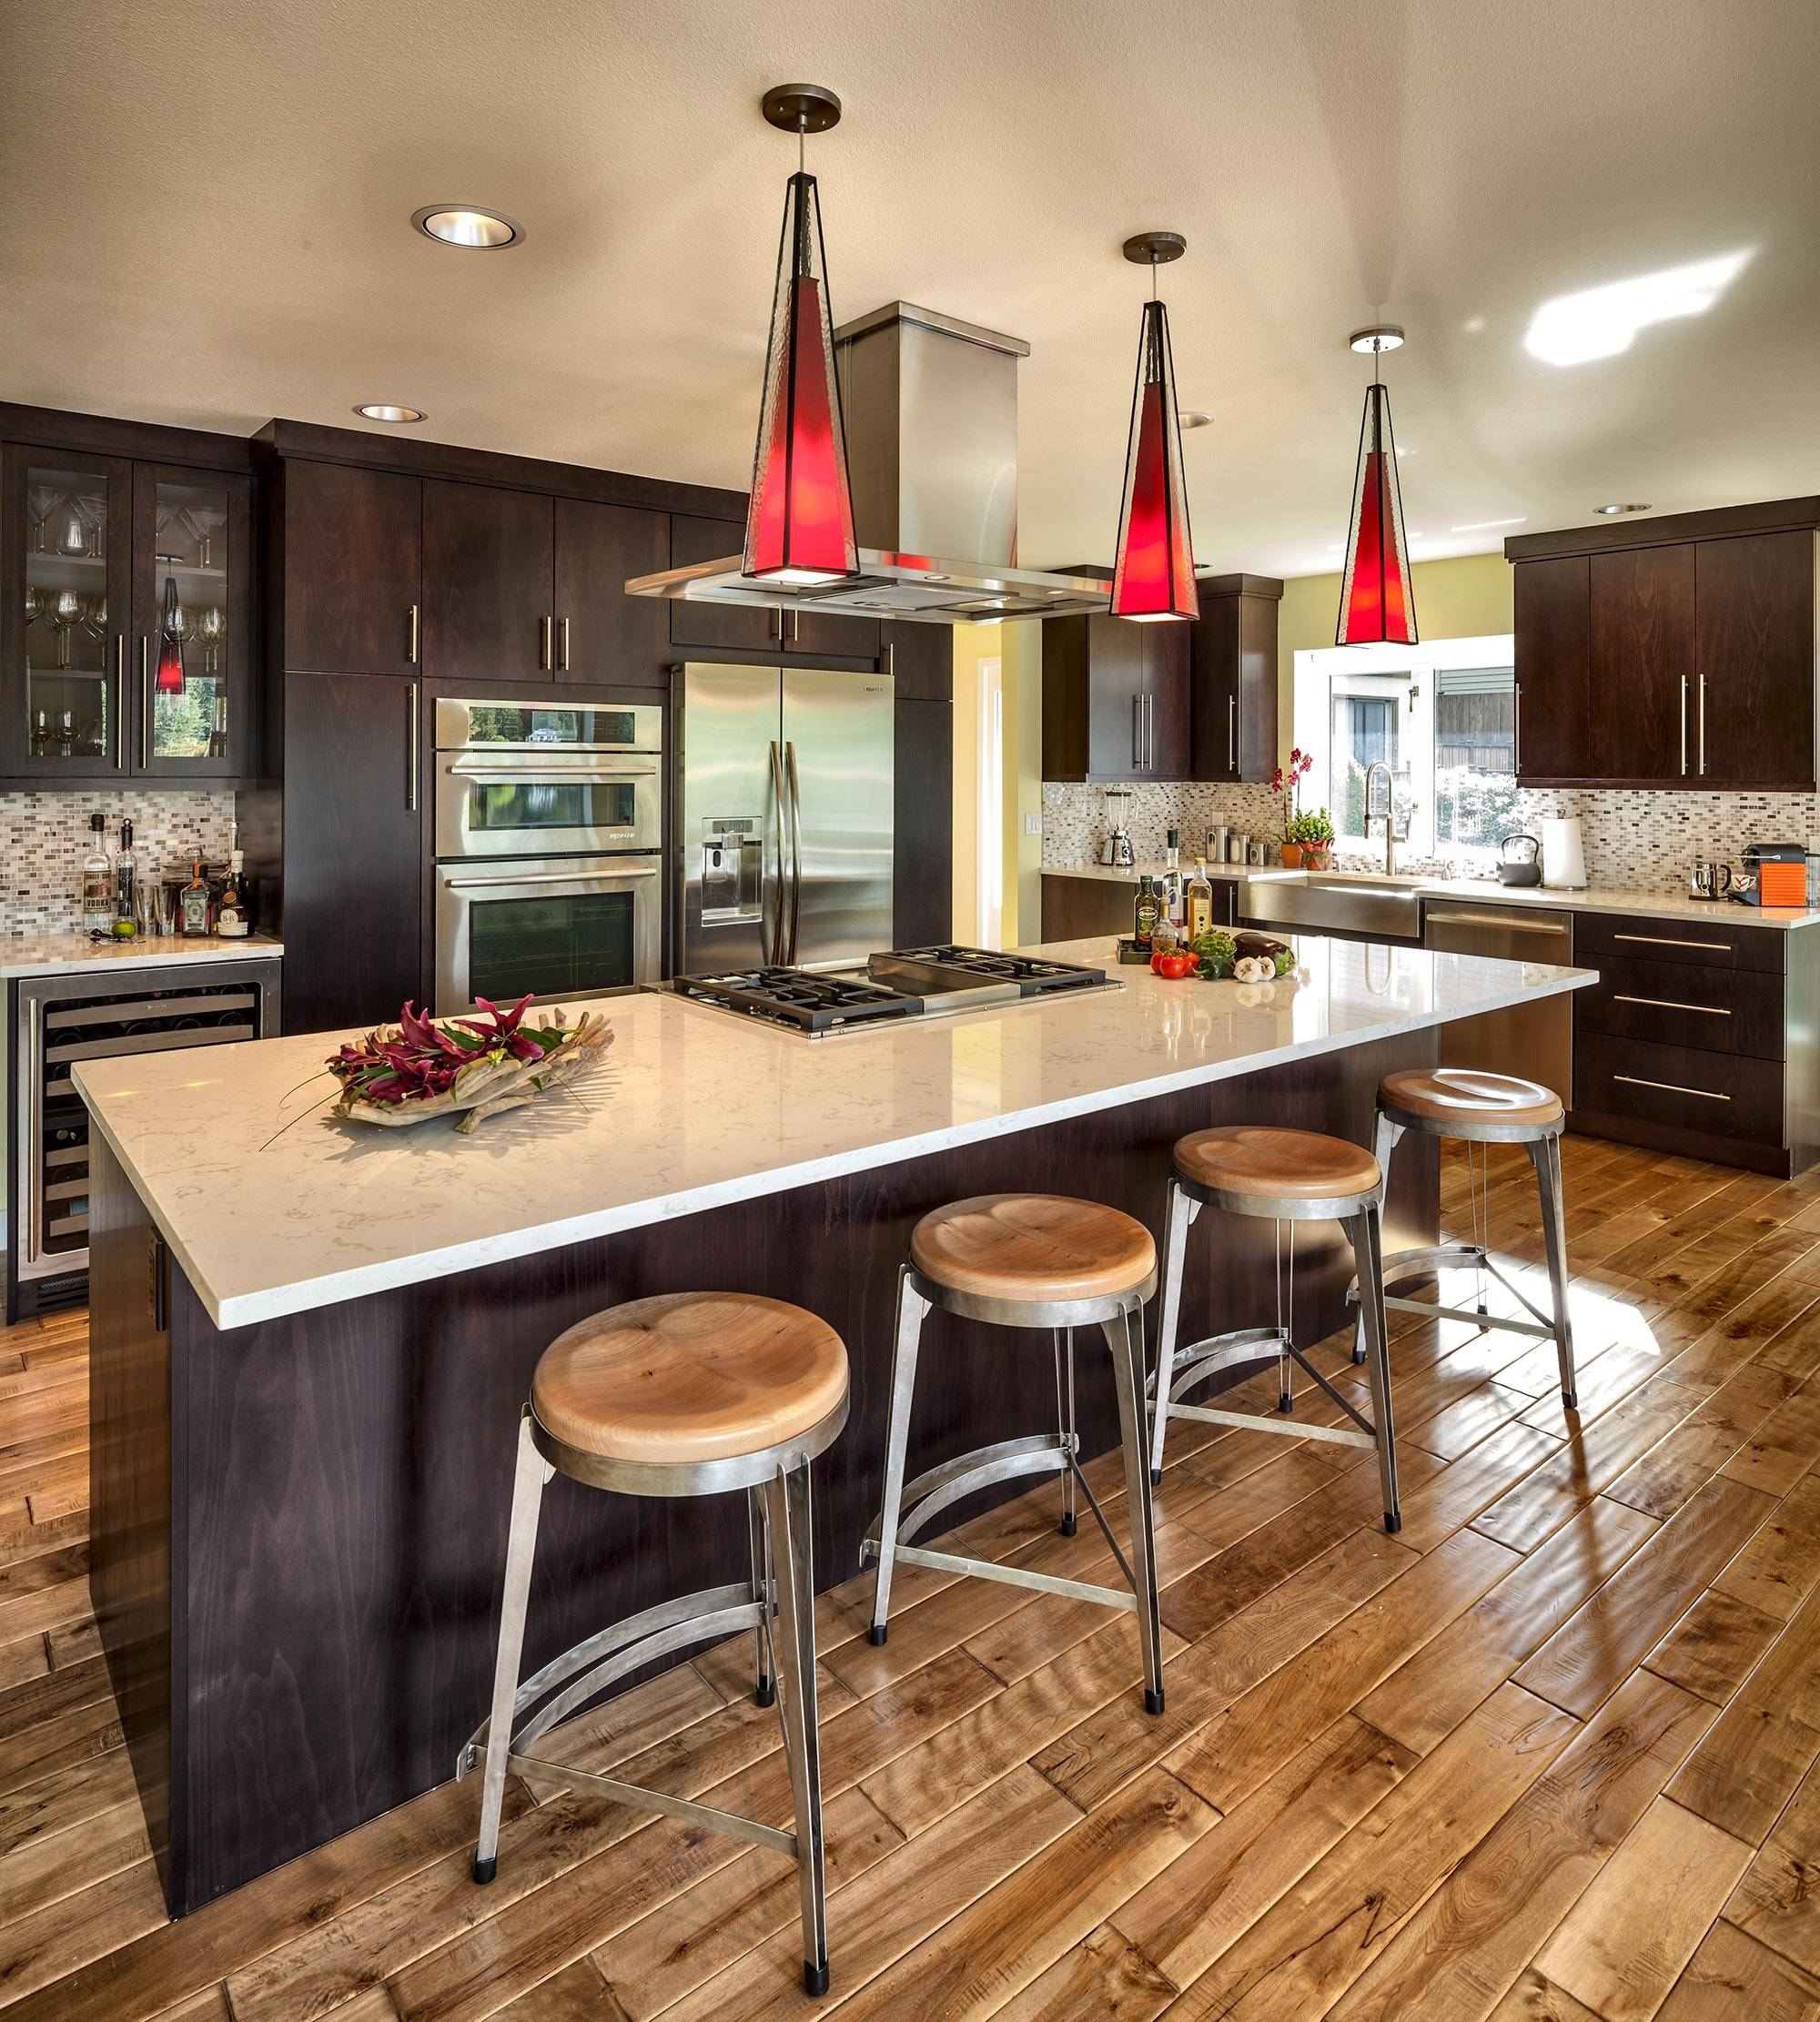 Dark cabinets light countertops Contemporary Kitchen beige mosaic tile backsplash industrial bar stool wood floor